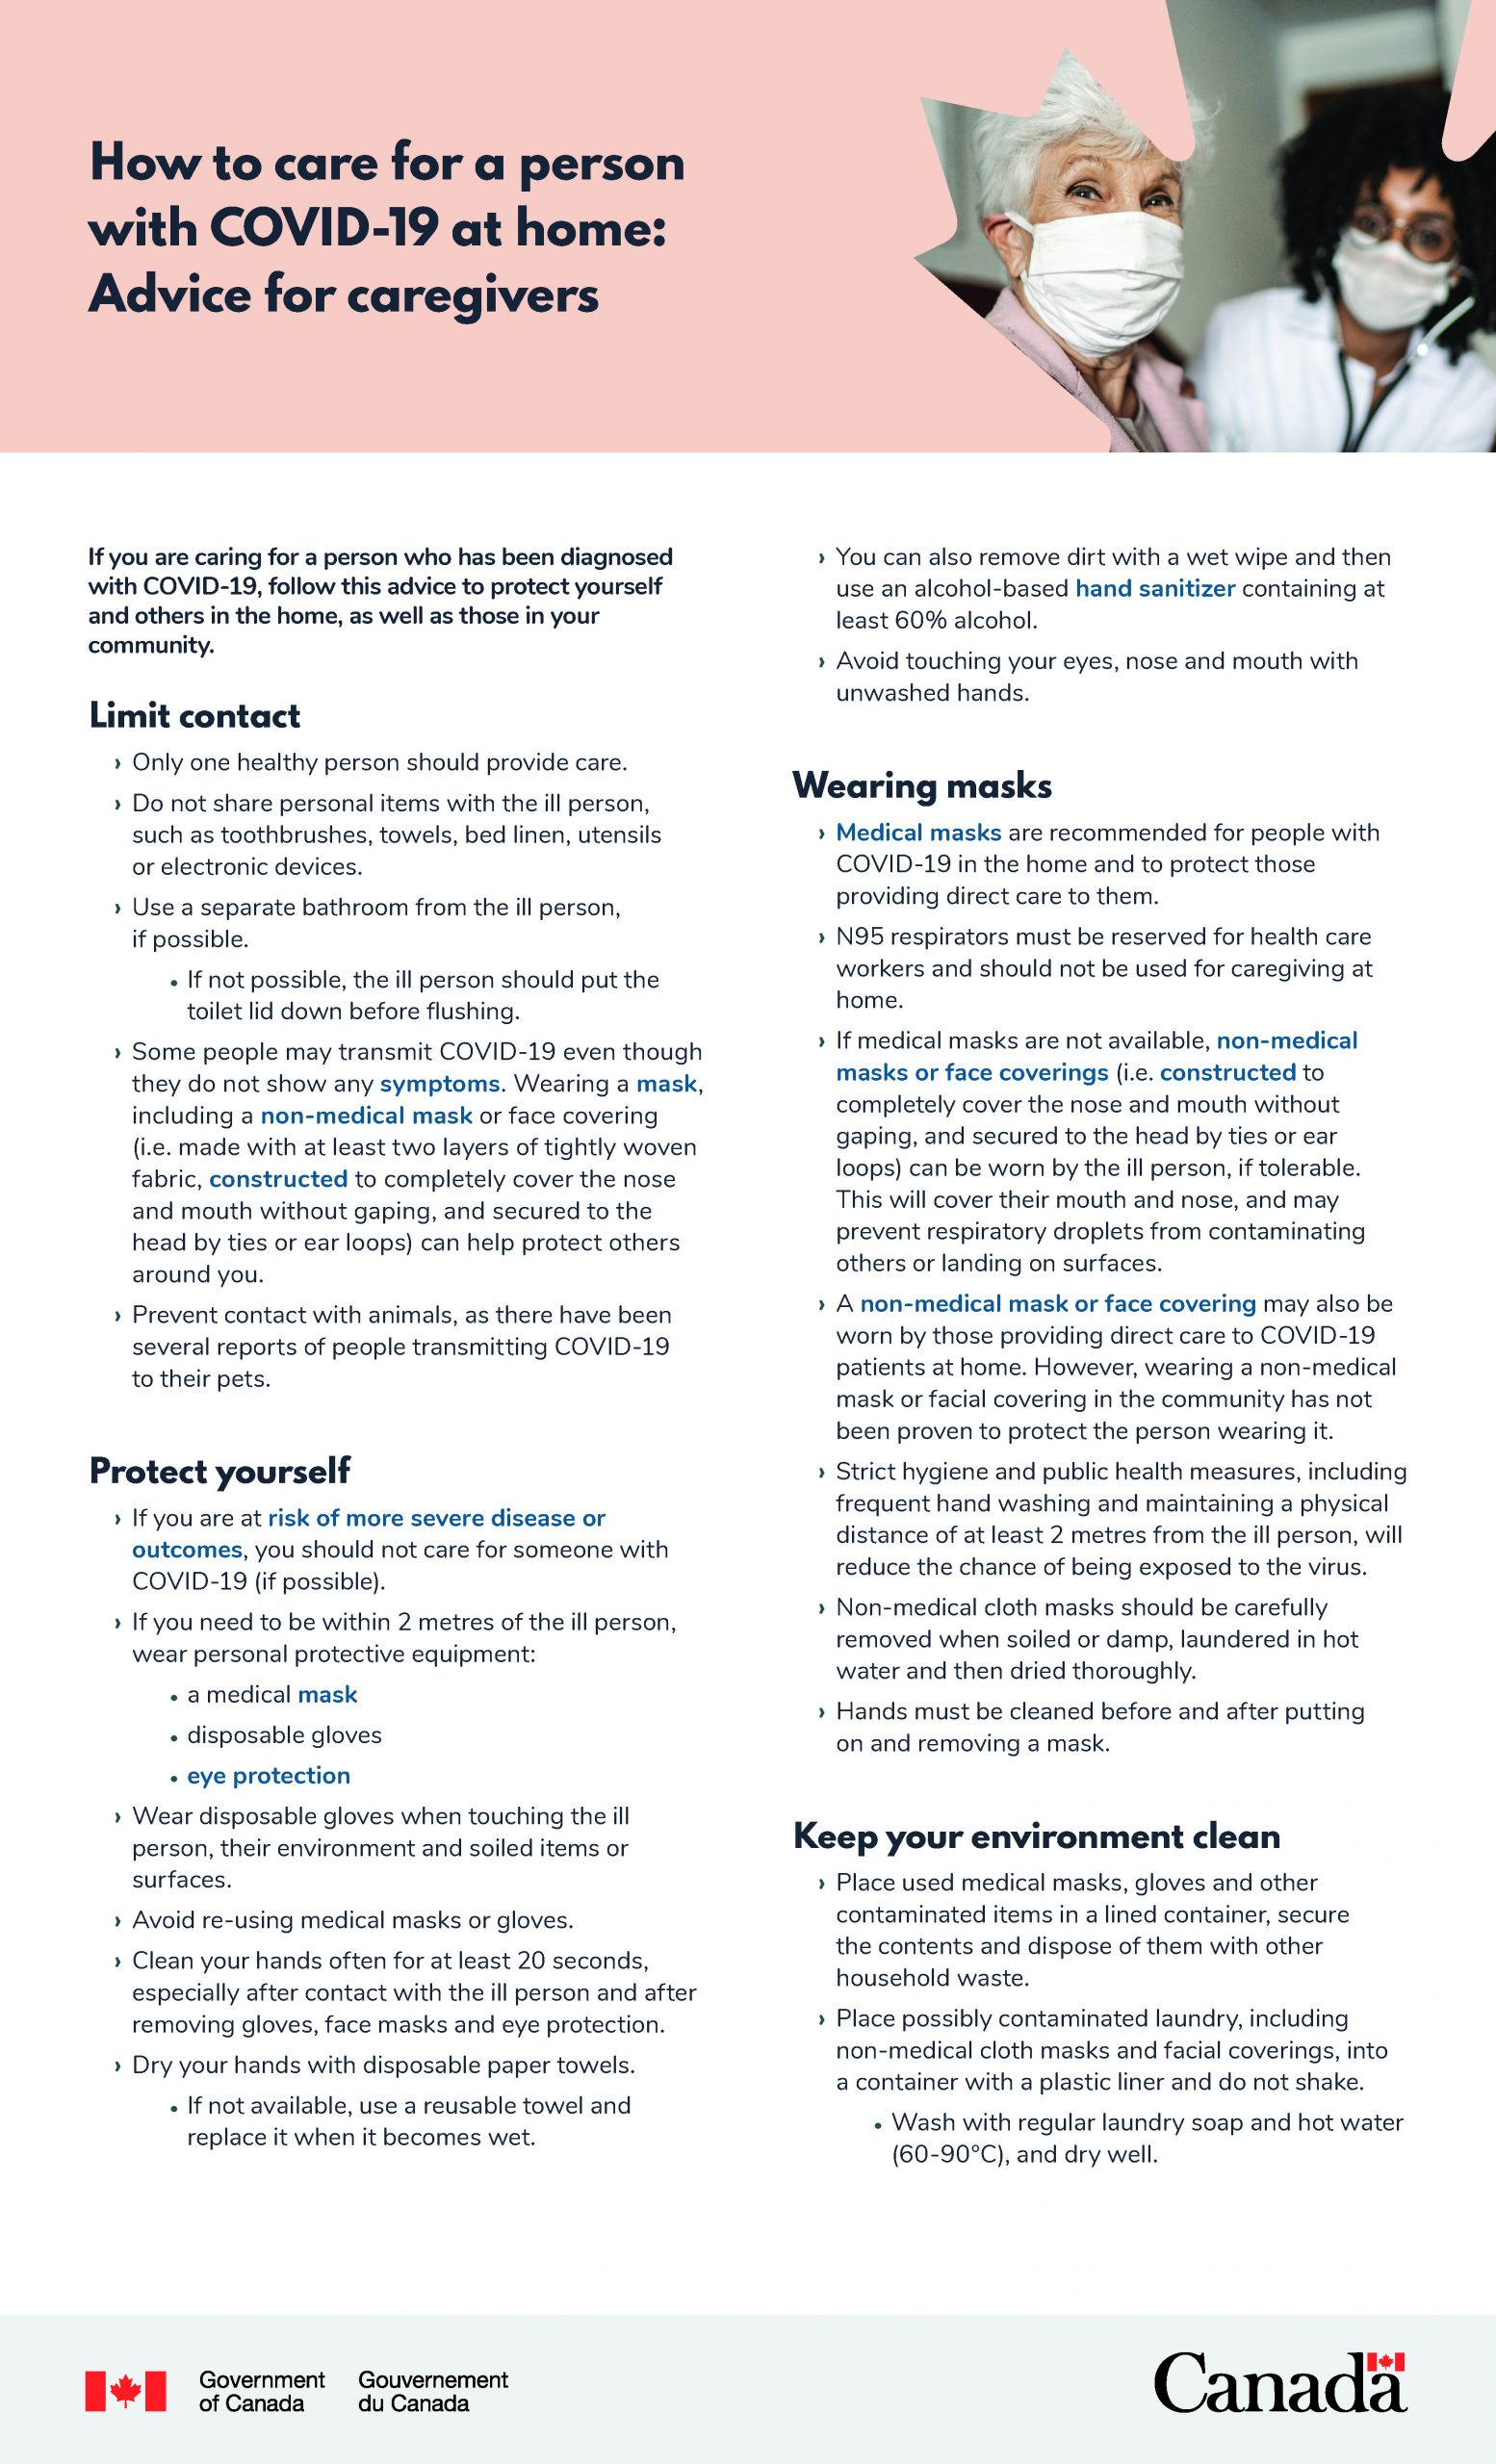 How to Care for a Person with COVID-19 - Page 1